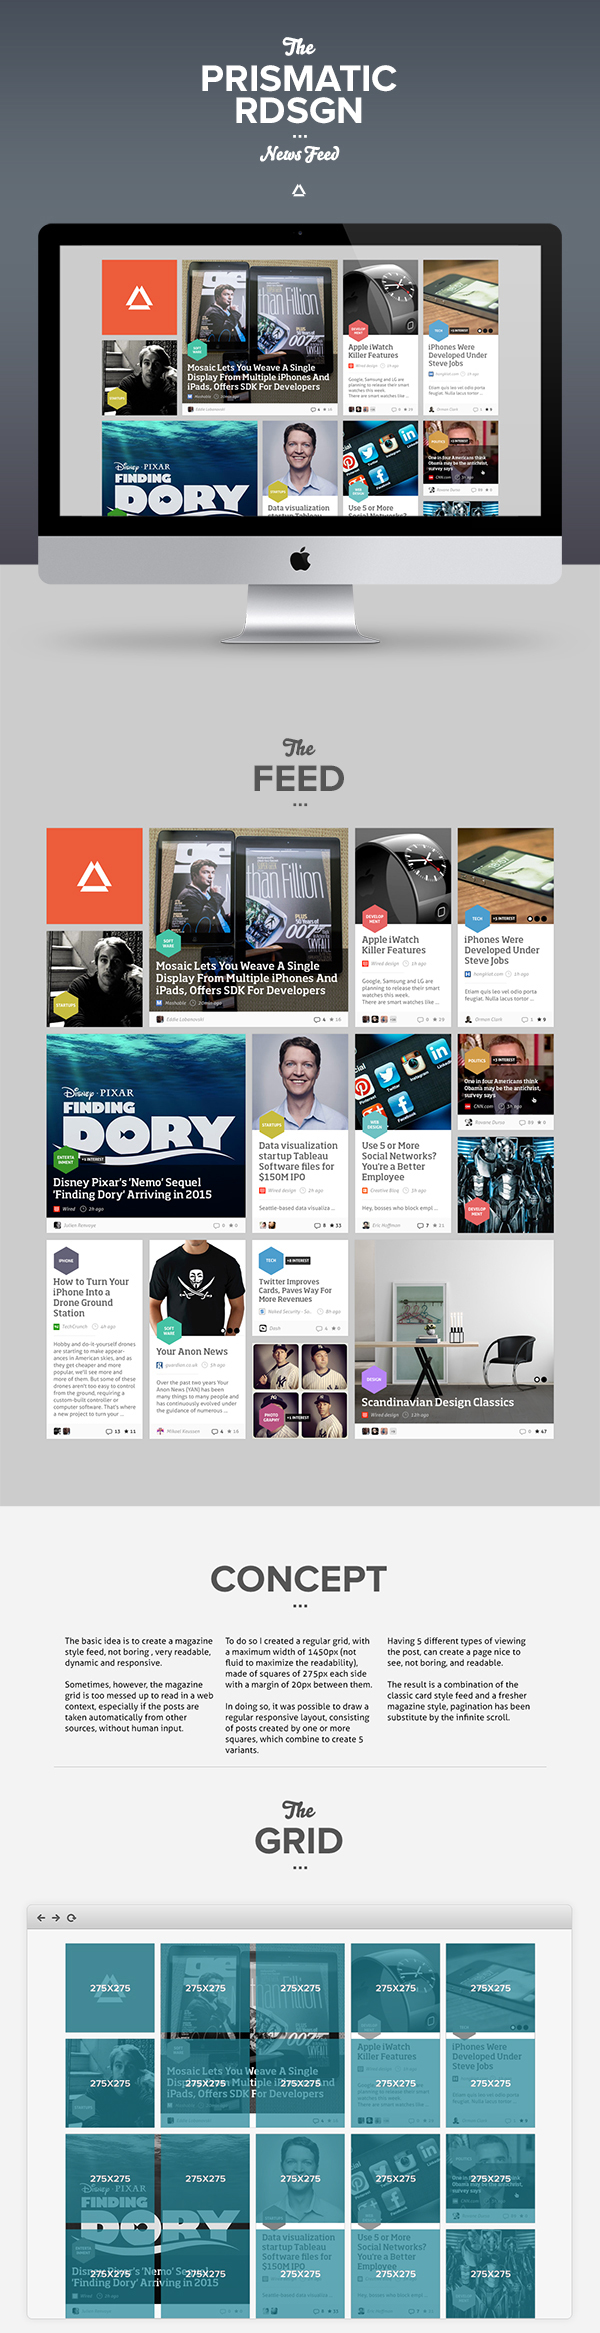 Prismatic NewsFeed Concept Redesign